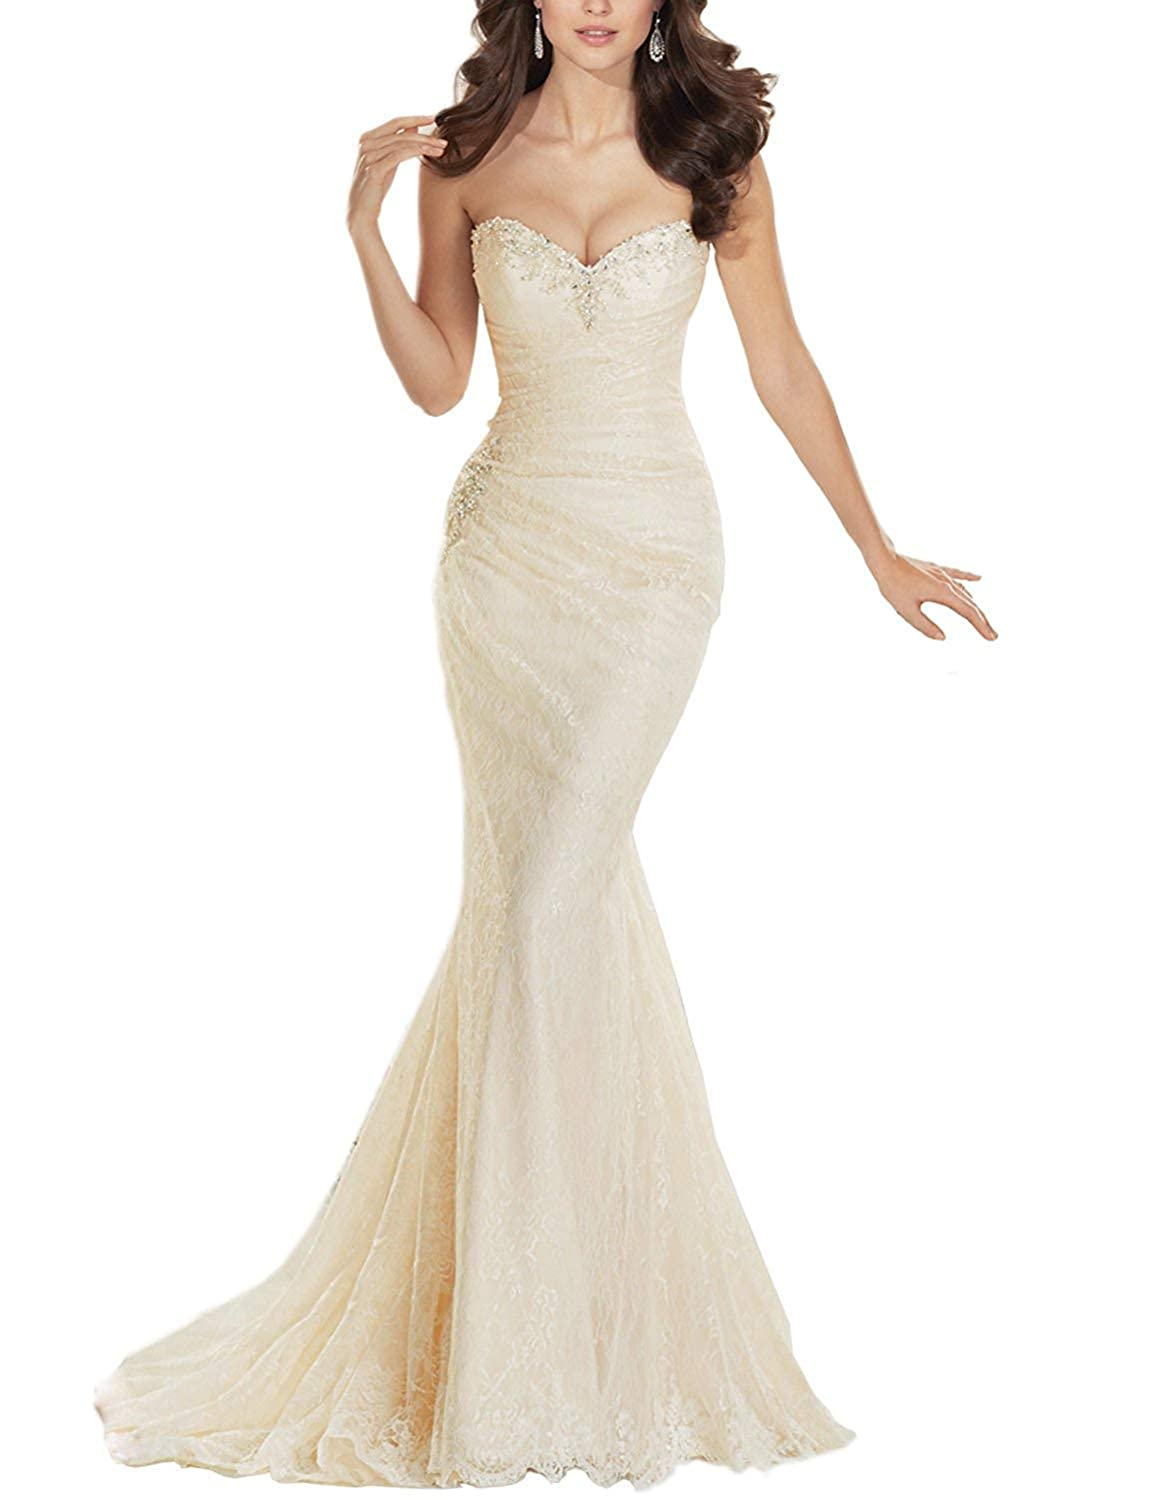 Champagne XKYU Women's Lace Strapless Long Bridal Wedding Dress Mermaid Beaded Bridal Gown